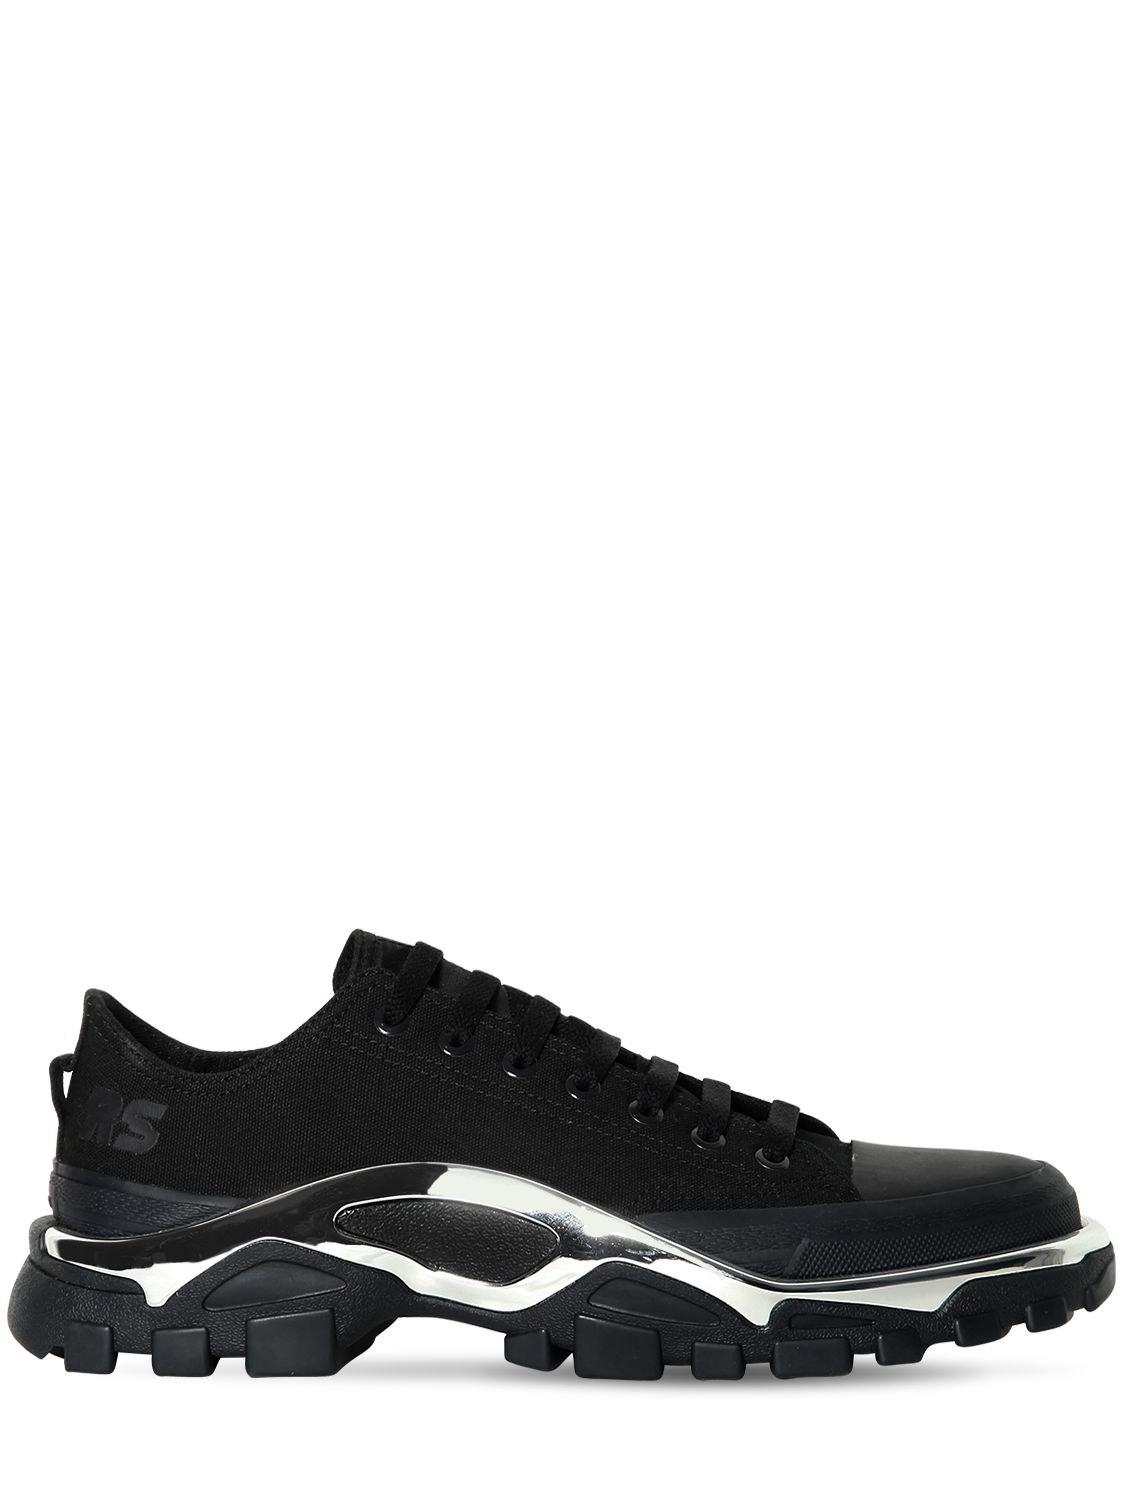 Lyst - adidas By Raf Simons Rs Detroit Runner Sneakers in Black for Men 64285bc7b